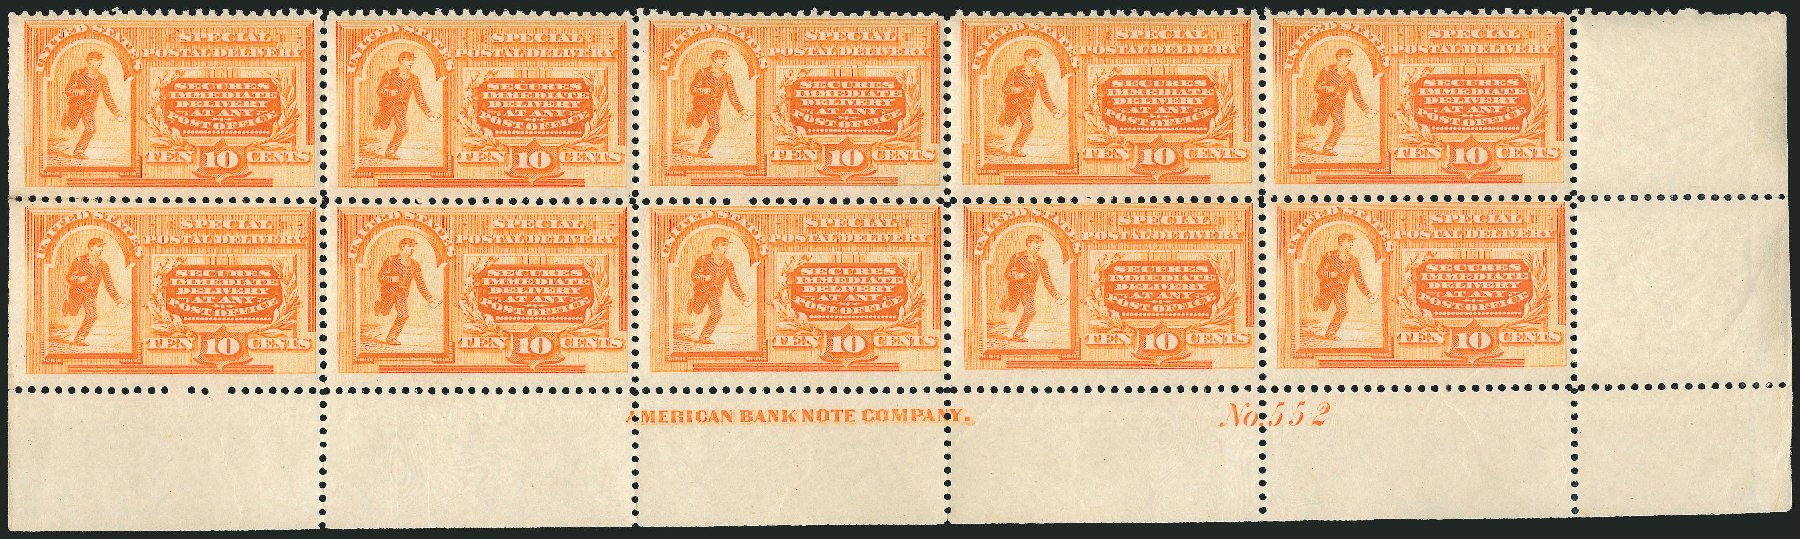 US Stamp Price Scott Catalogue #E3 - 1893 10c Special Delivery. Robert Siegel Auction Galleries, Apr 2015, Sale 1096, Lot 830